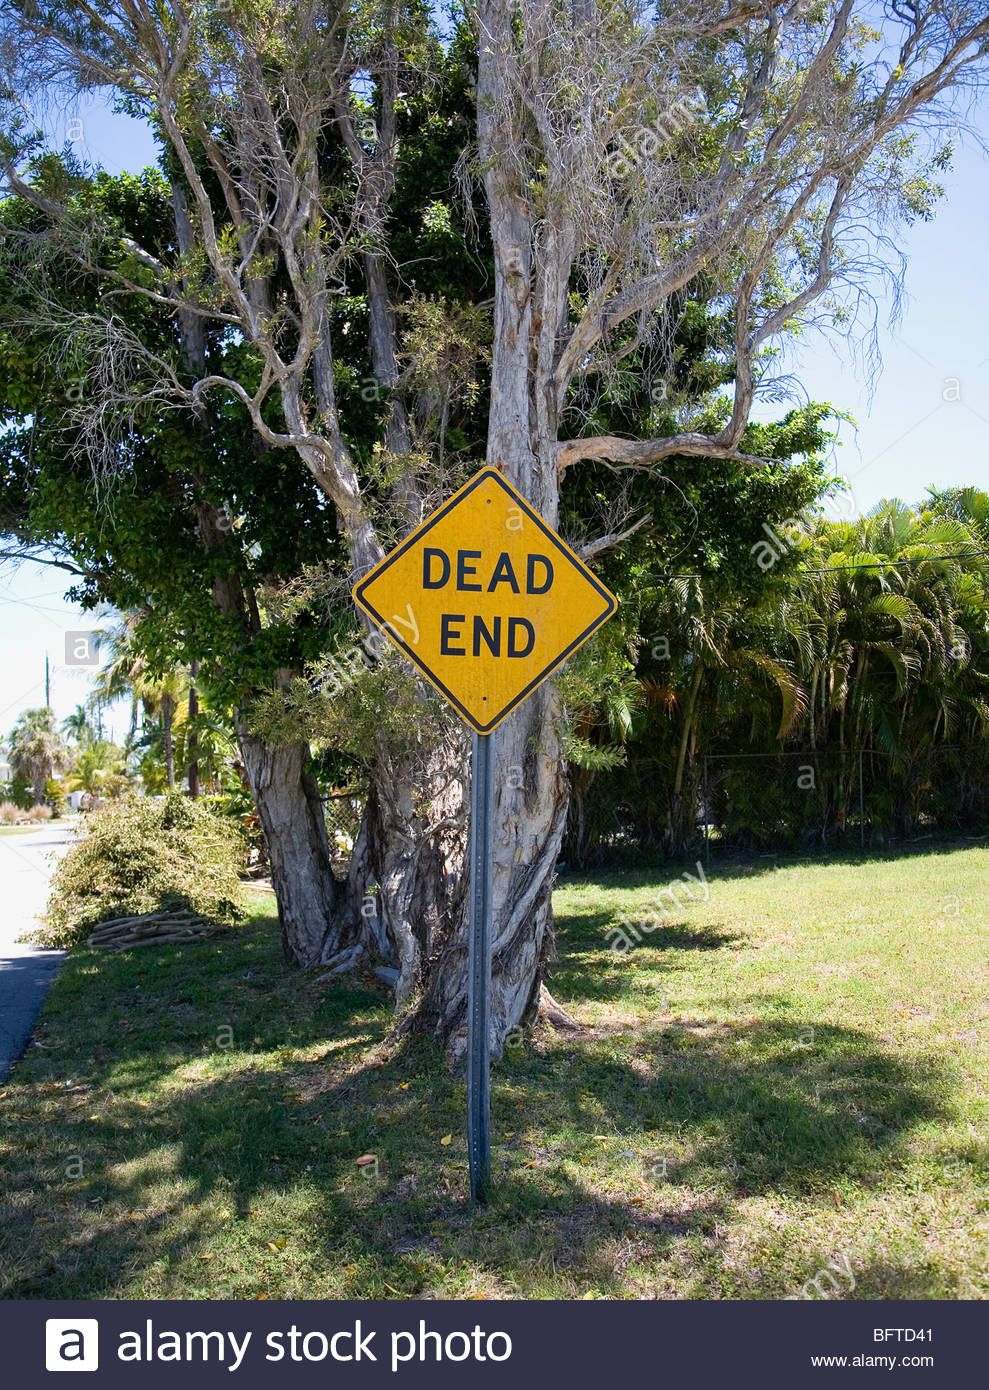 Dead end sign - Stock Image